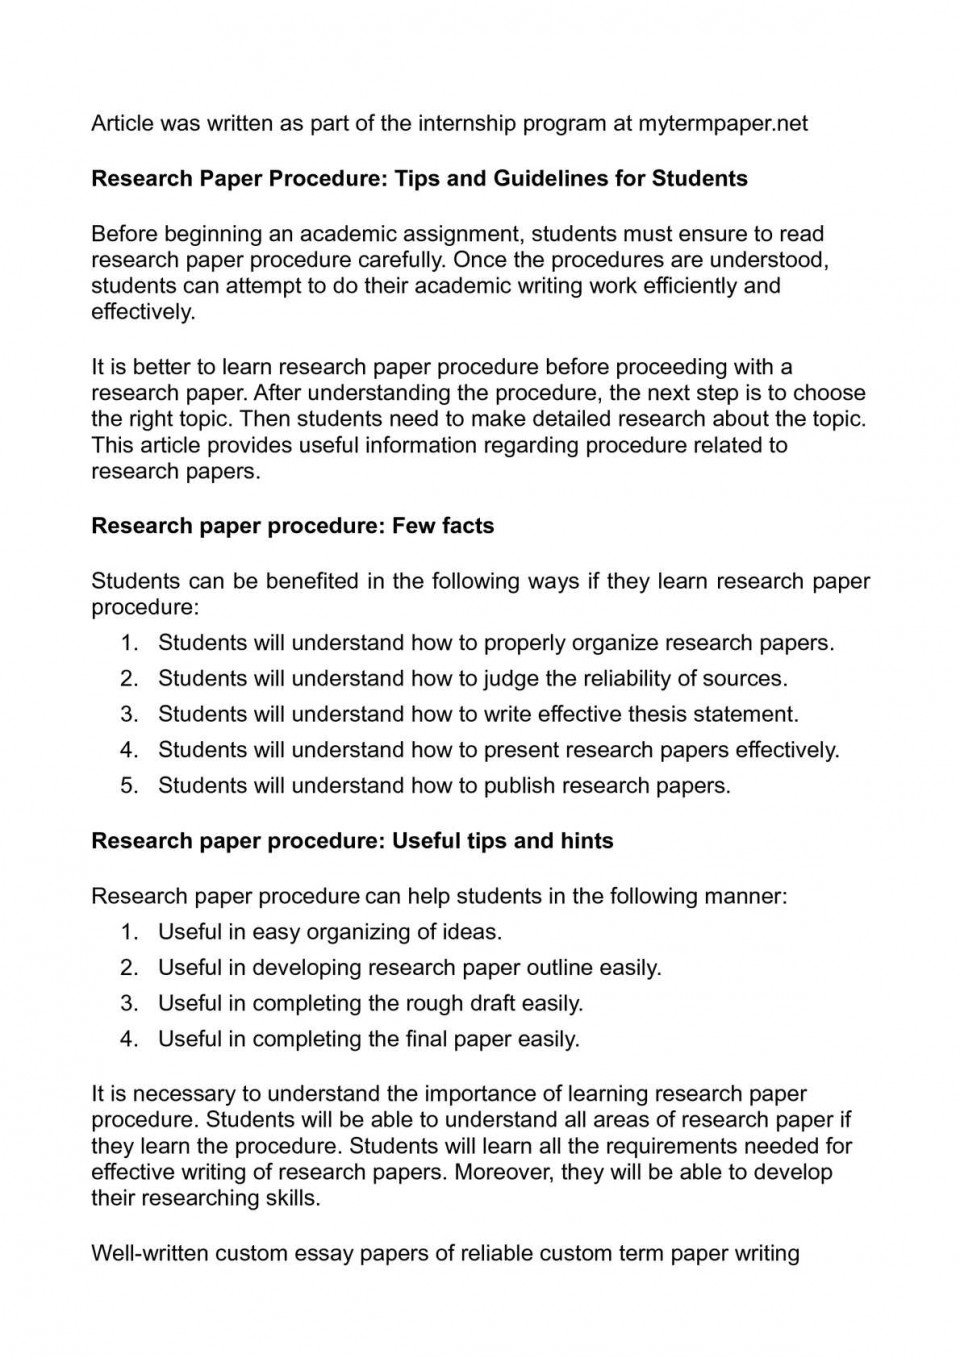 018 How To Do Research Paper Marvelous Write A Good Review College Outline 960